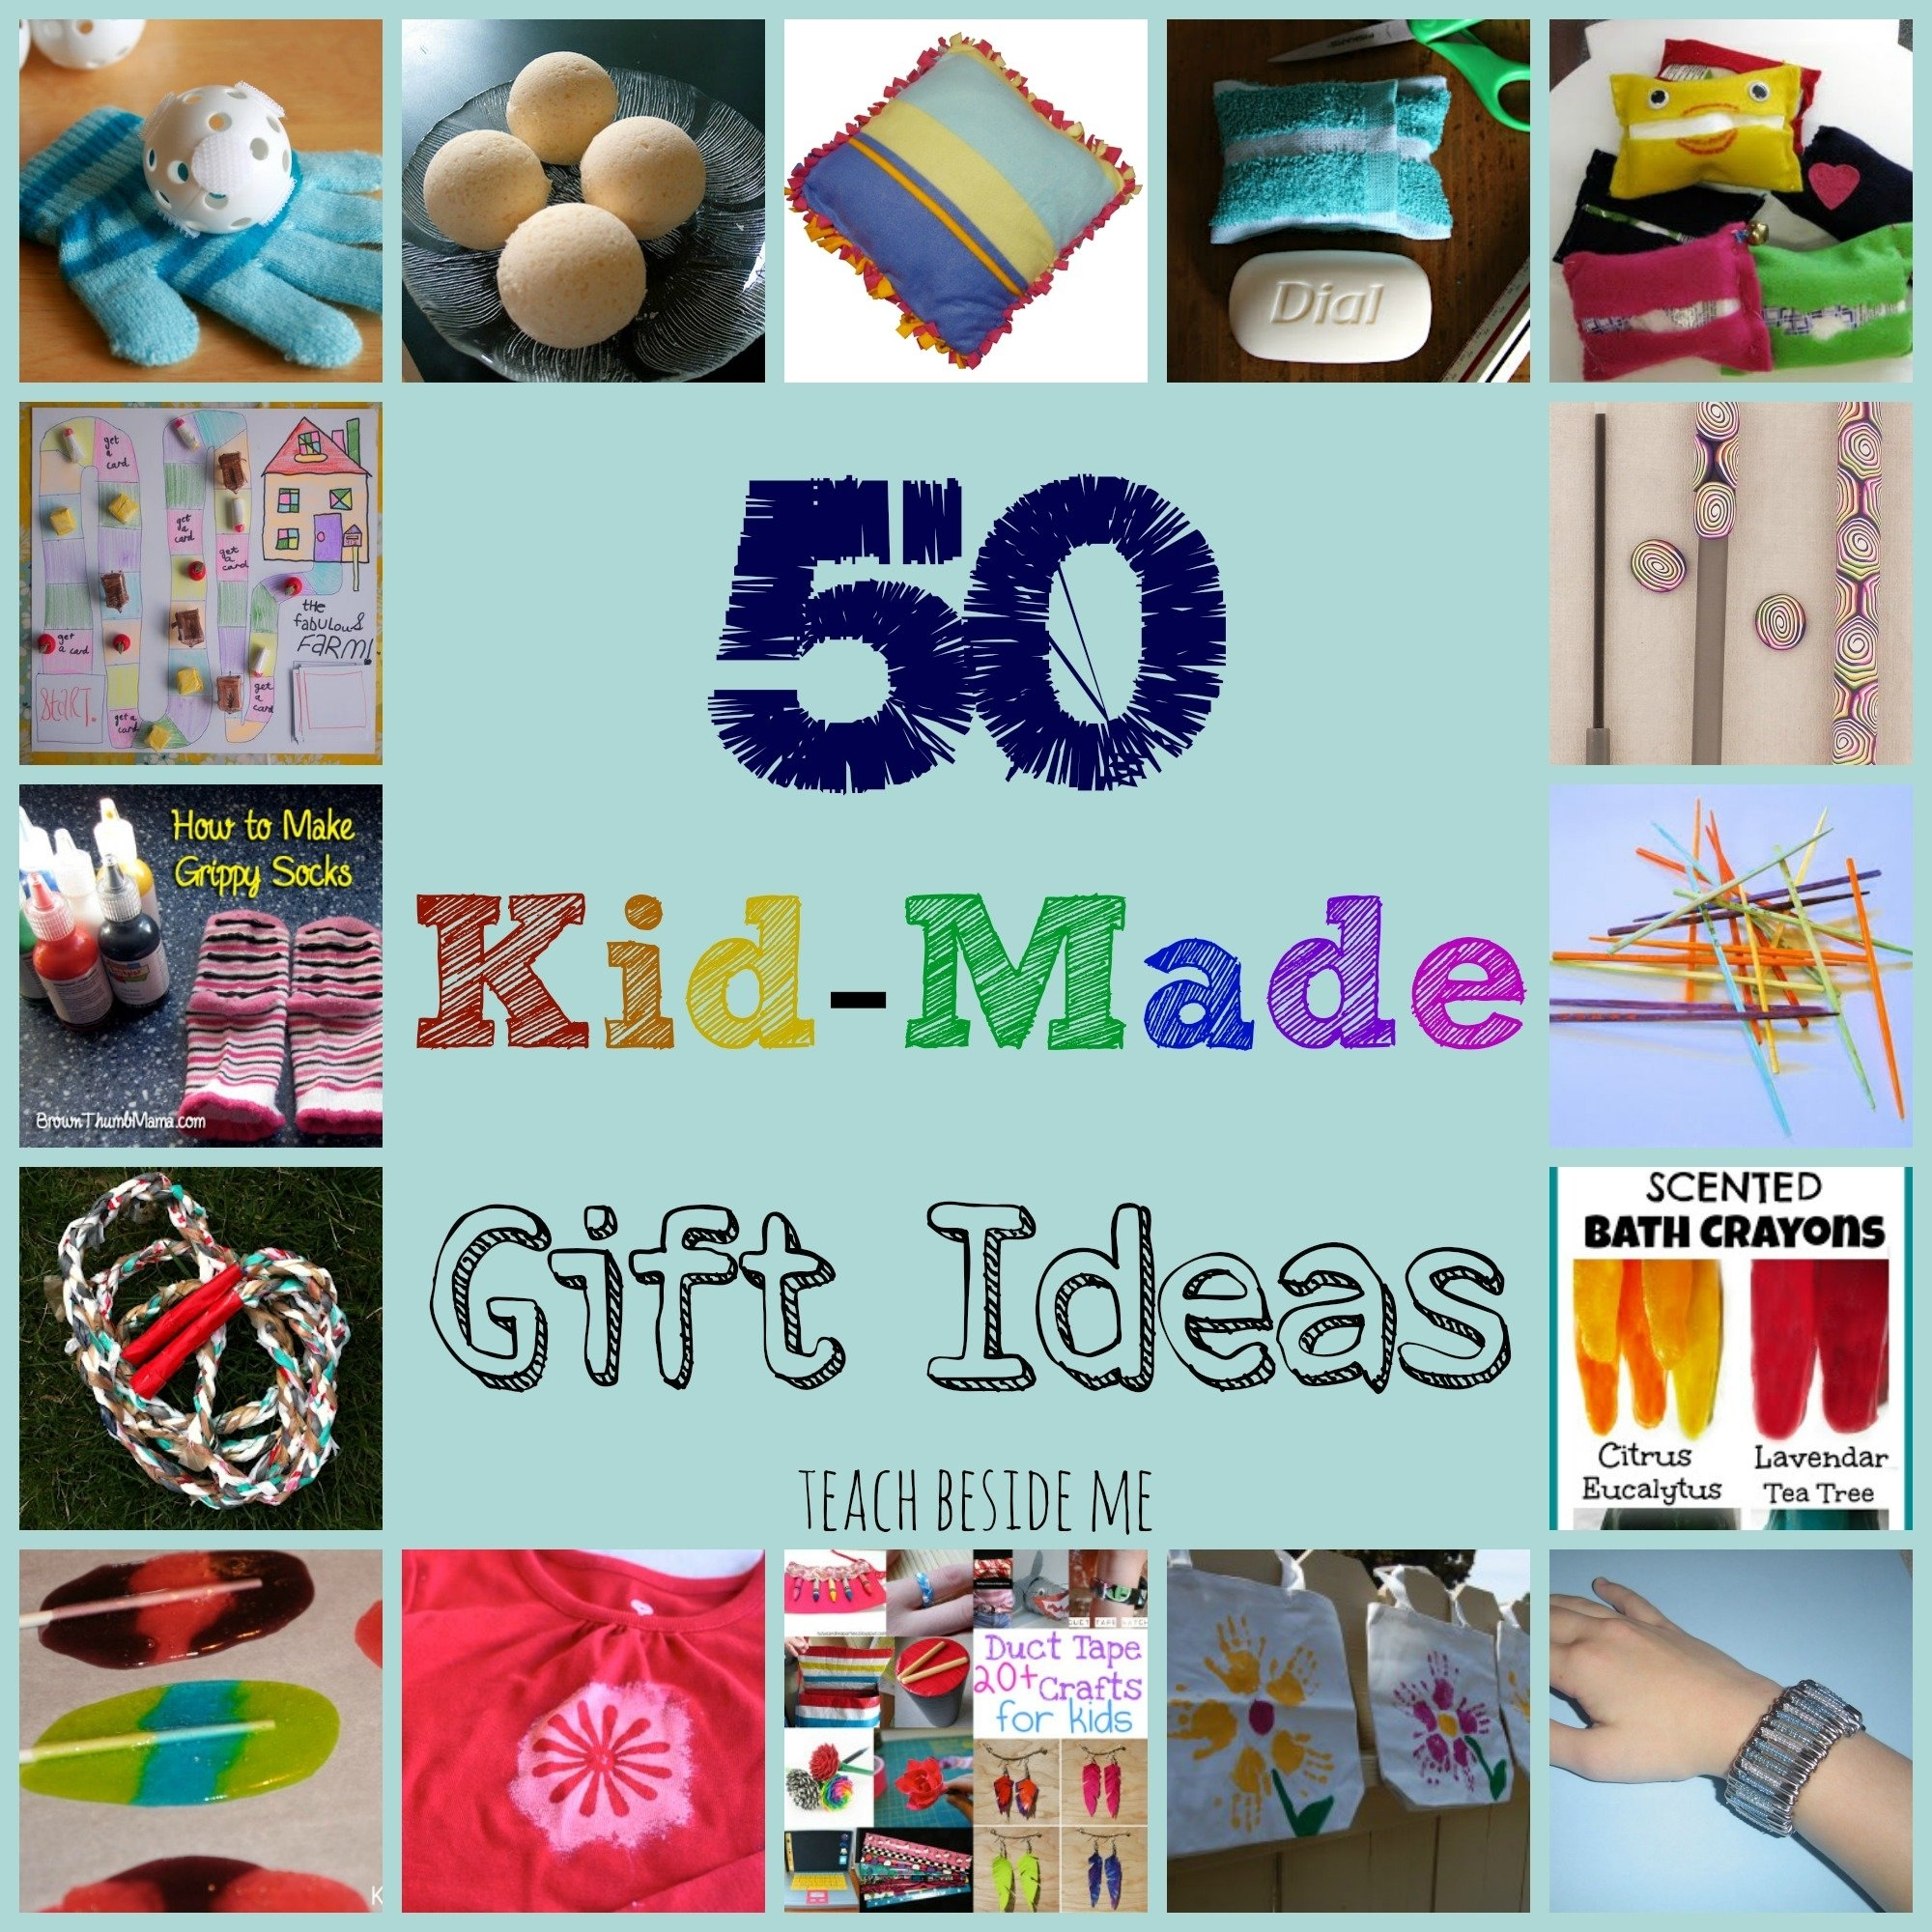 10 Stylish Gift Ideas For Family Friends kid made gift ideas for family teach beside me 6 2020